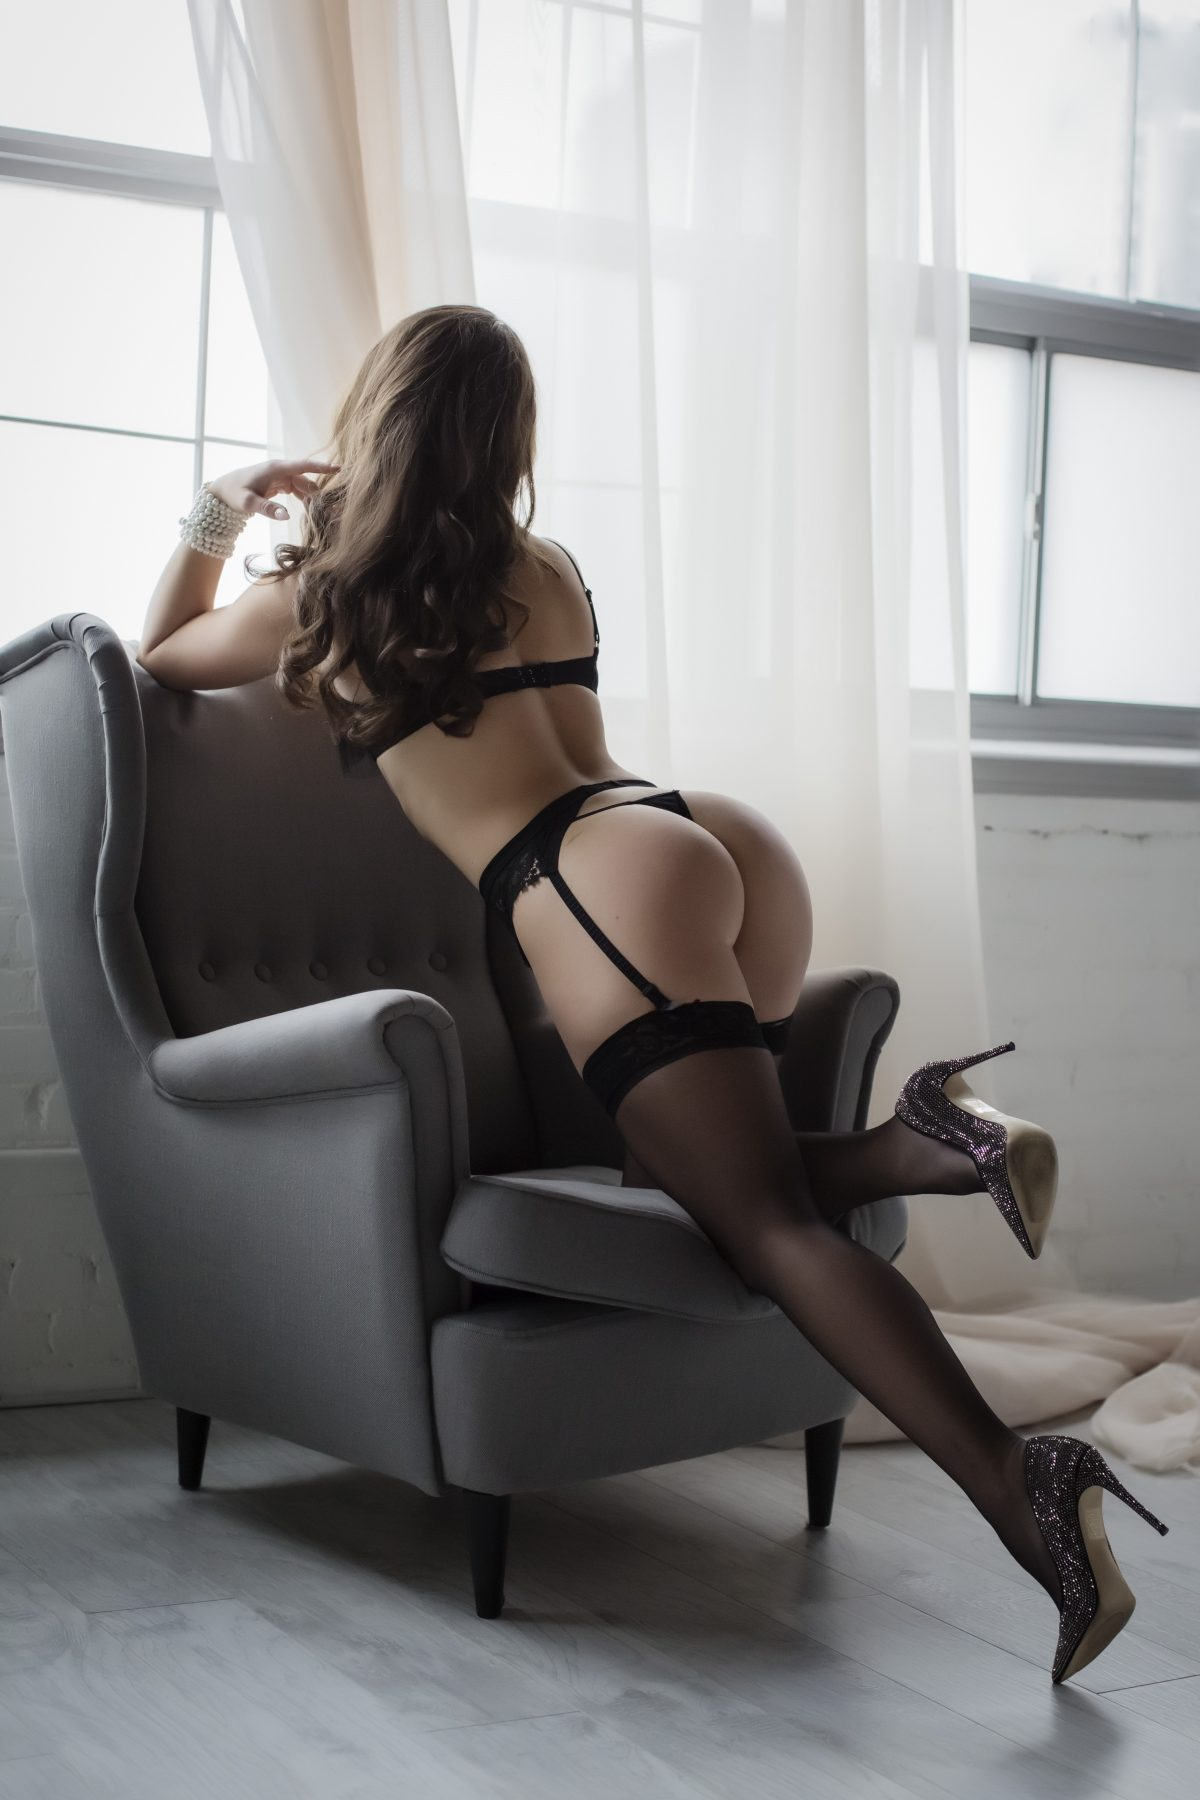 Toronto escorts companion upscale Kara Disability-friendly Non-smoking Young Slender Curvy Natural Brunette European None